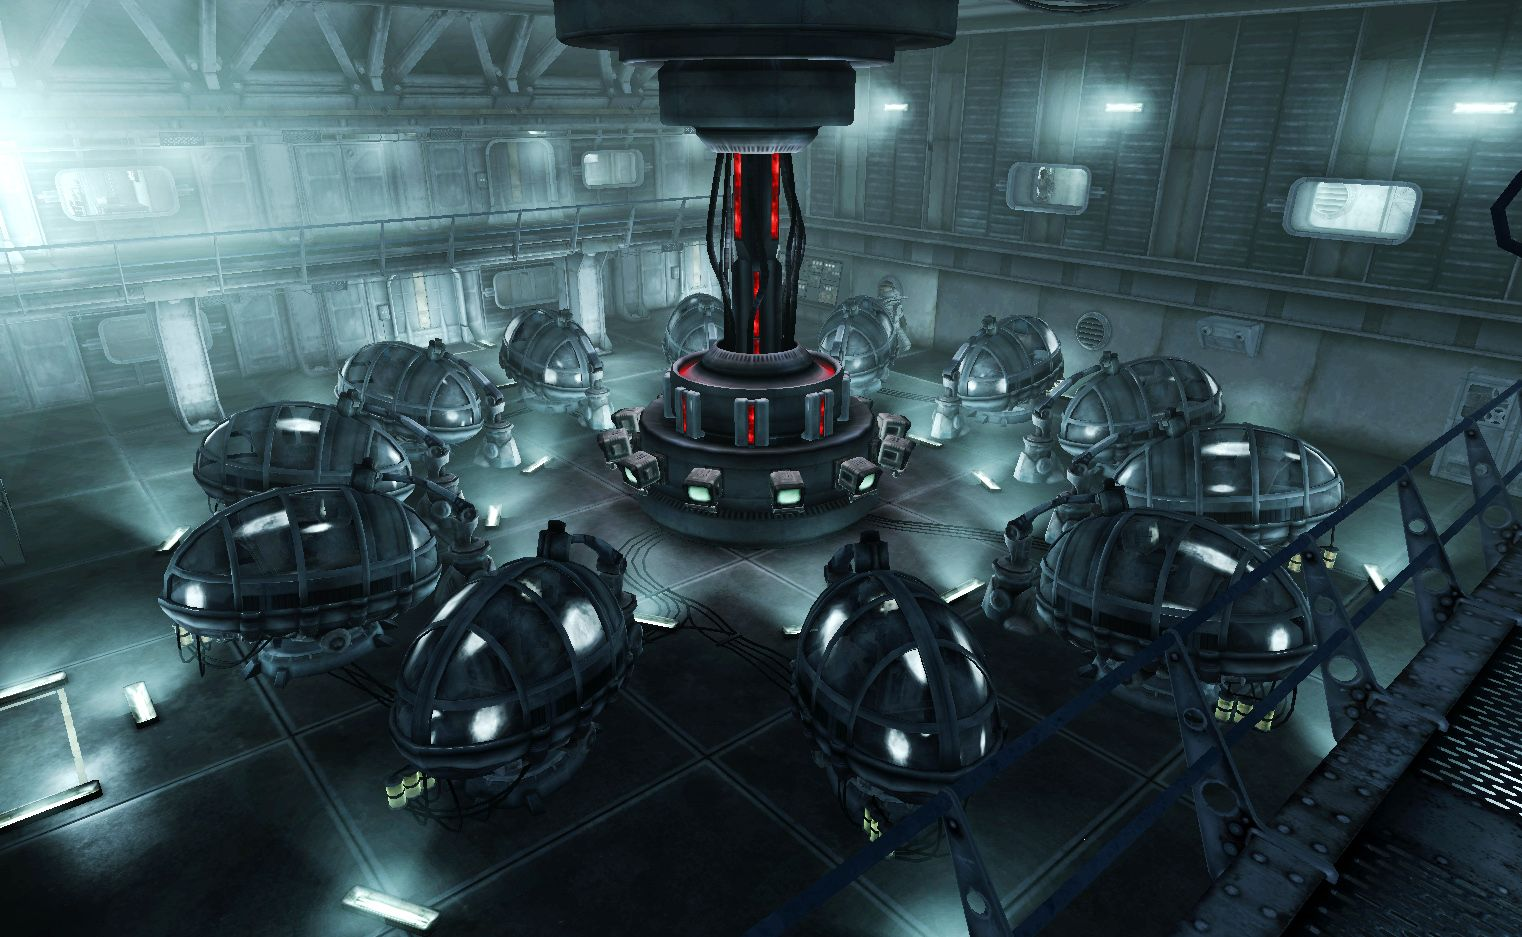 fallout 3 cryo pods Google Search Fallout, Space